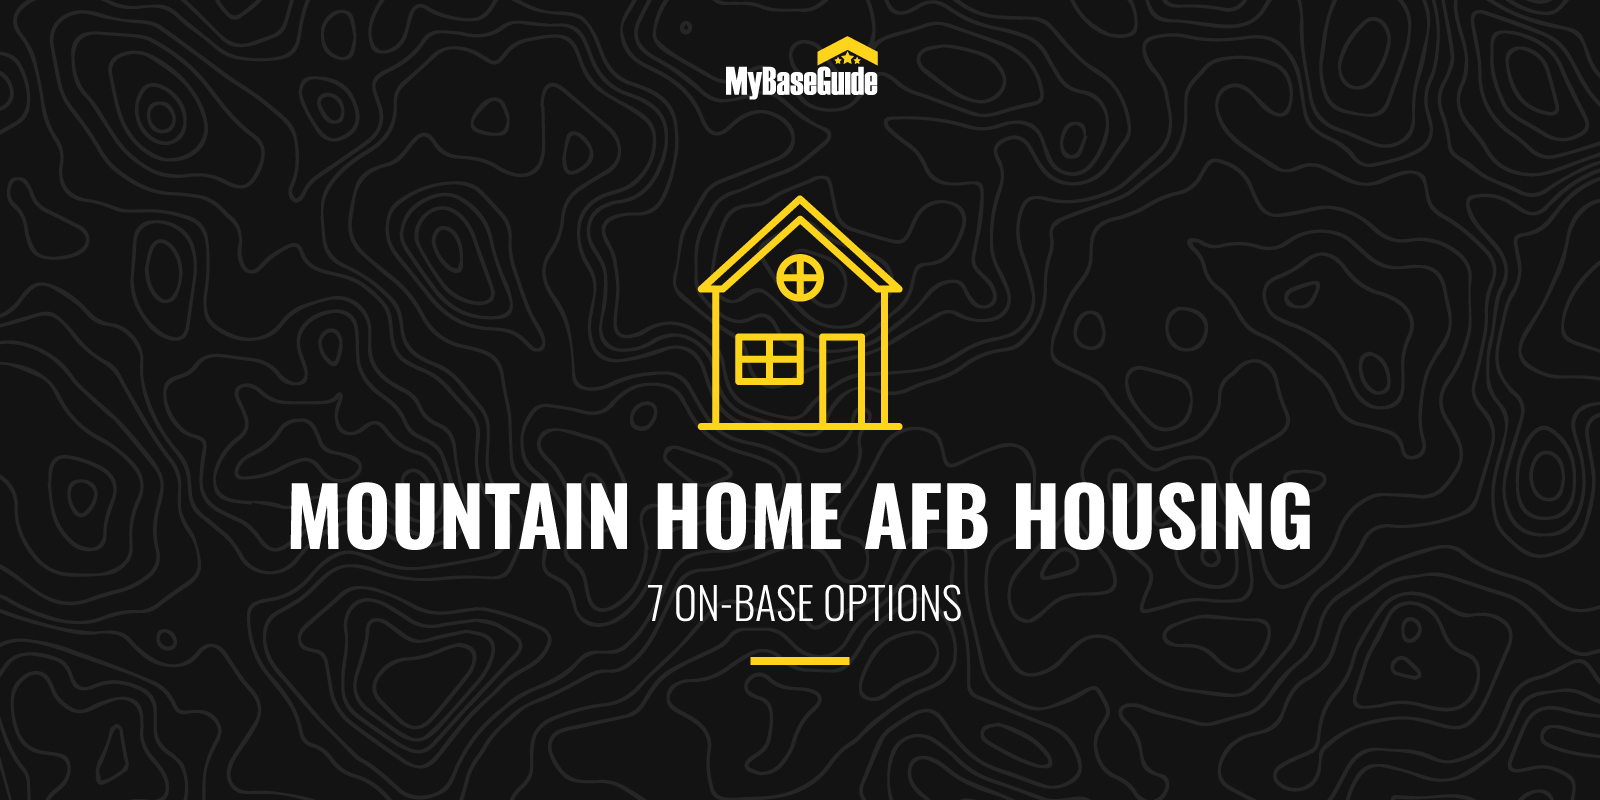 Mountain Home AFB Housing: 7 On-Base Options